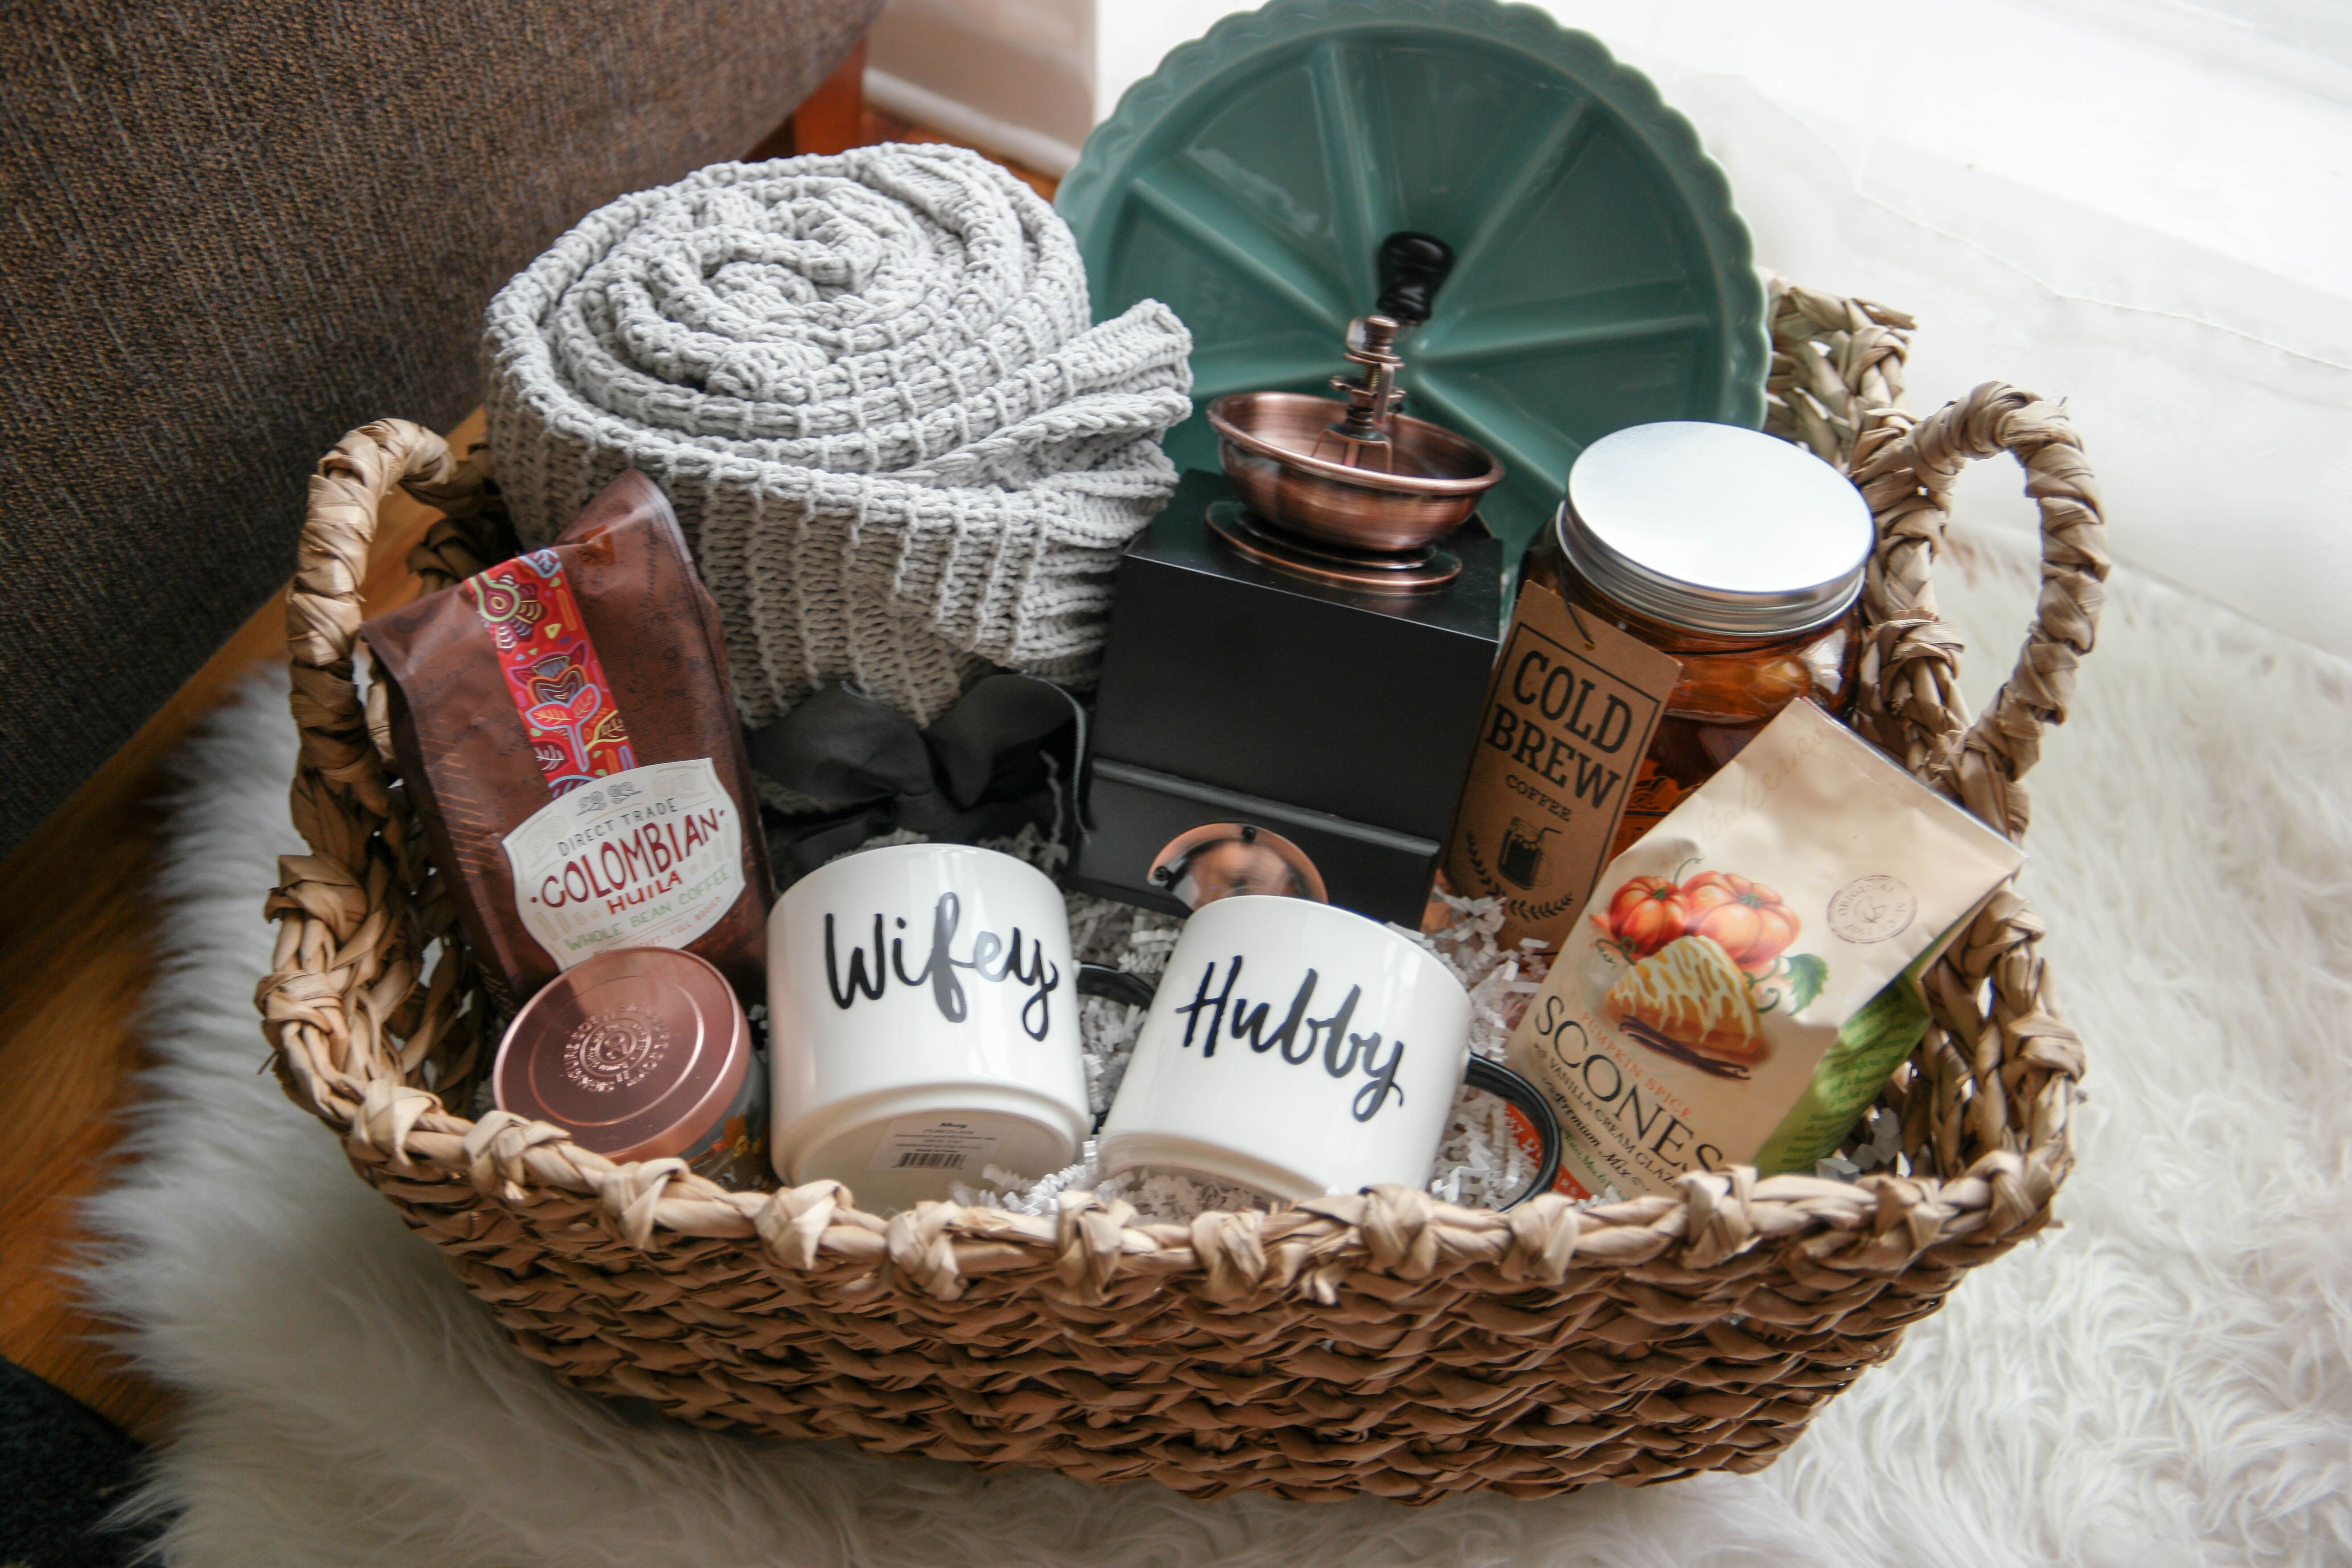 Best ideas about Couples Gift Basket Ideas . Save or Pin A Cozy Morning Gift Basket A Perfect Gift For Newlyweds Now.